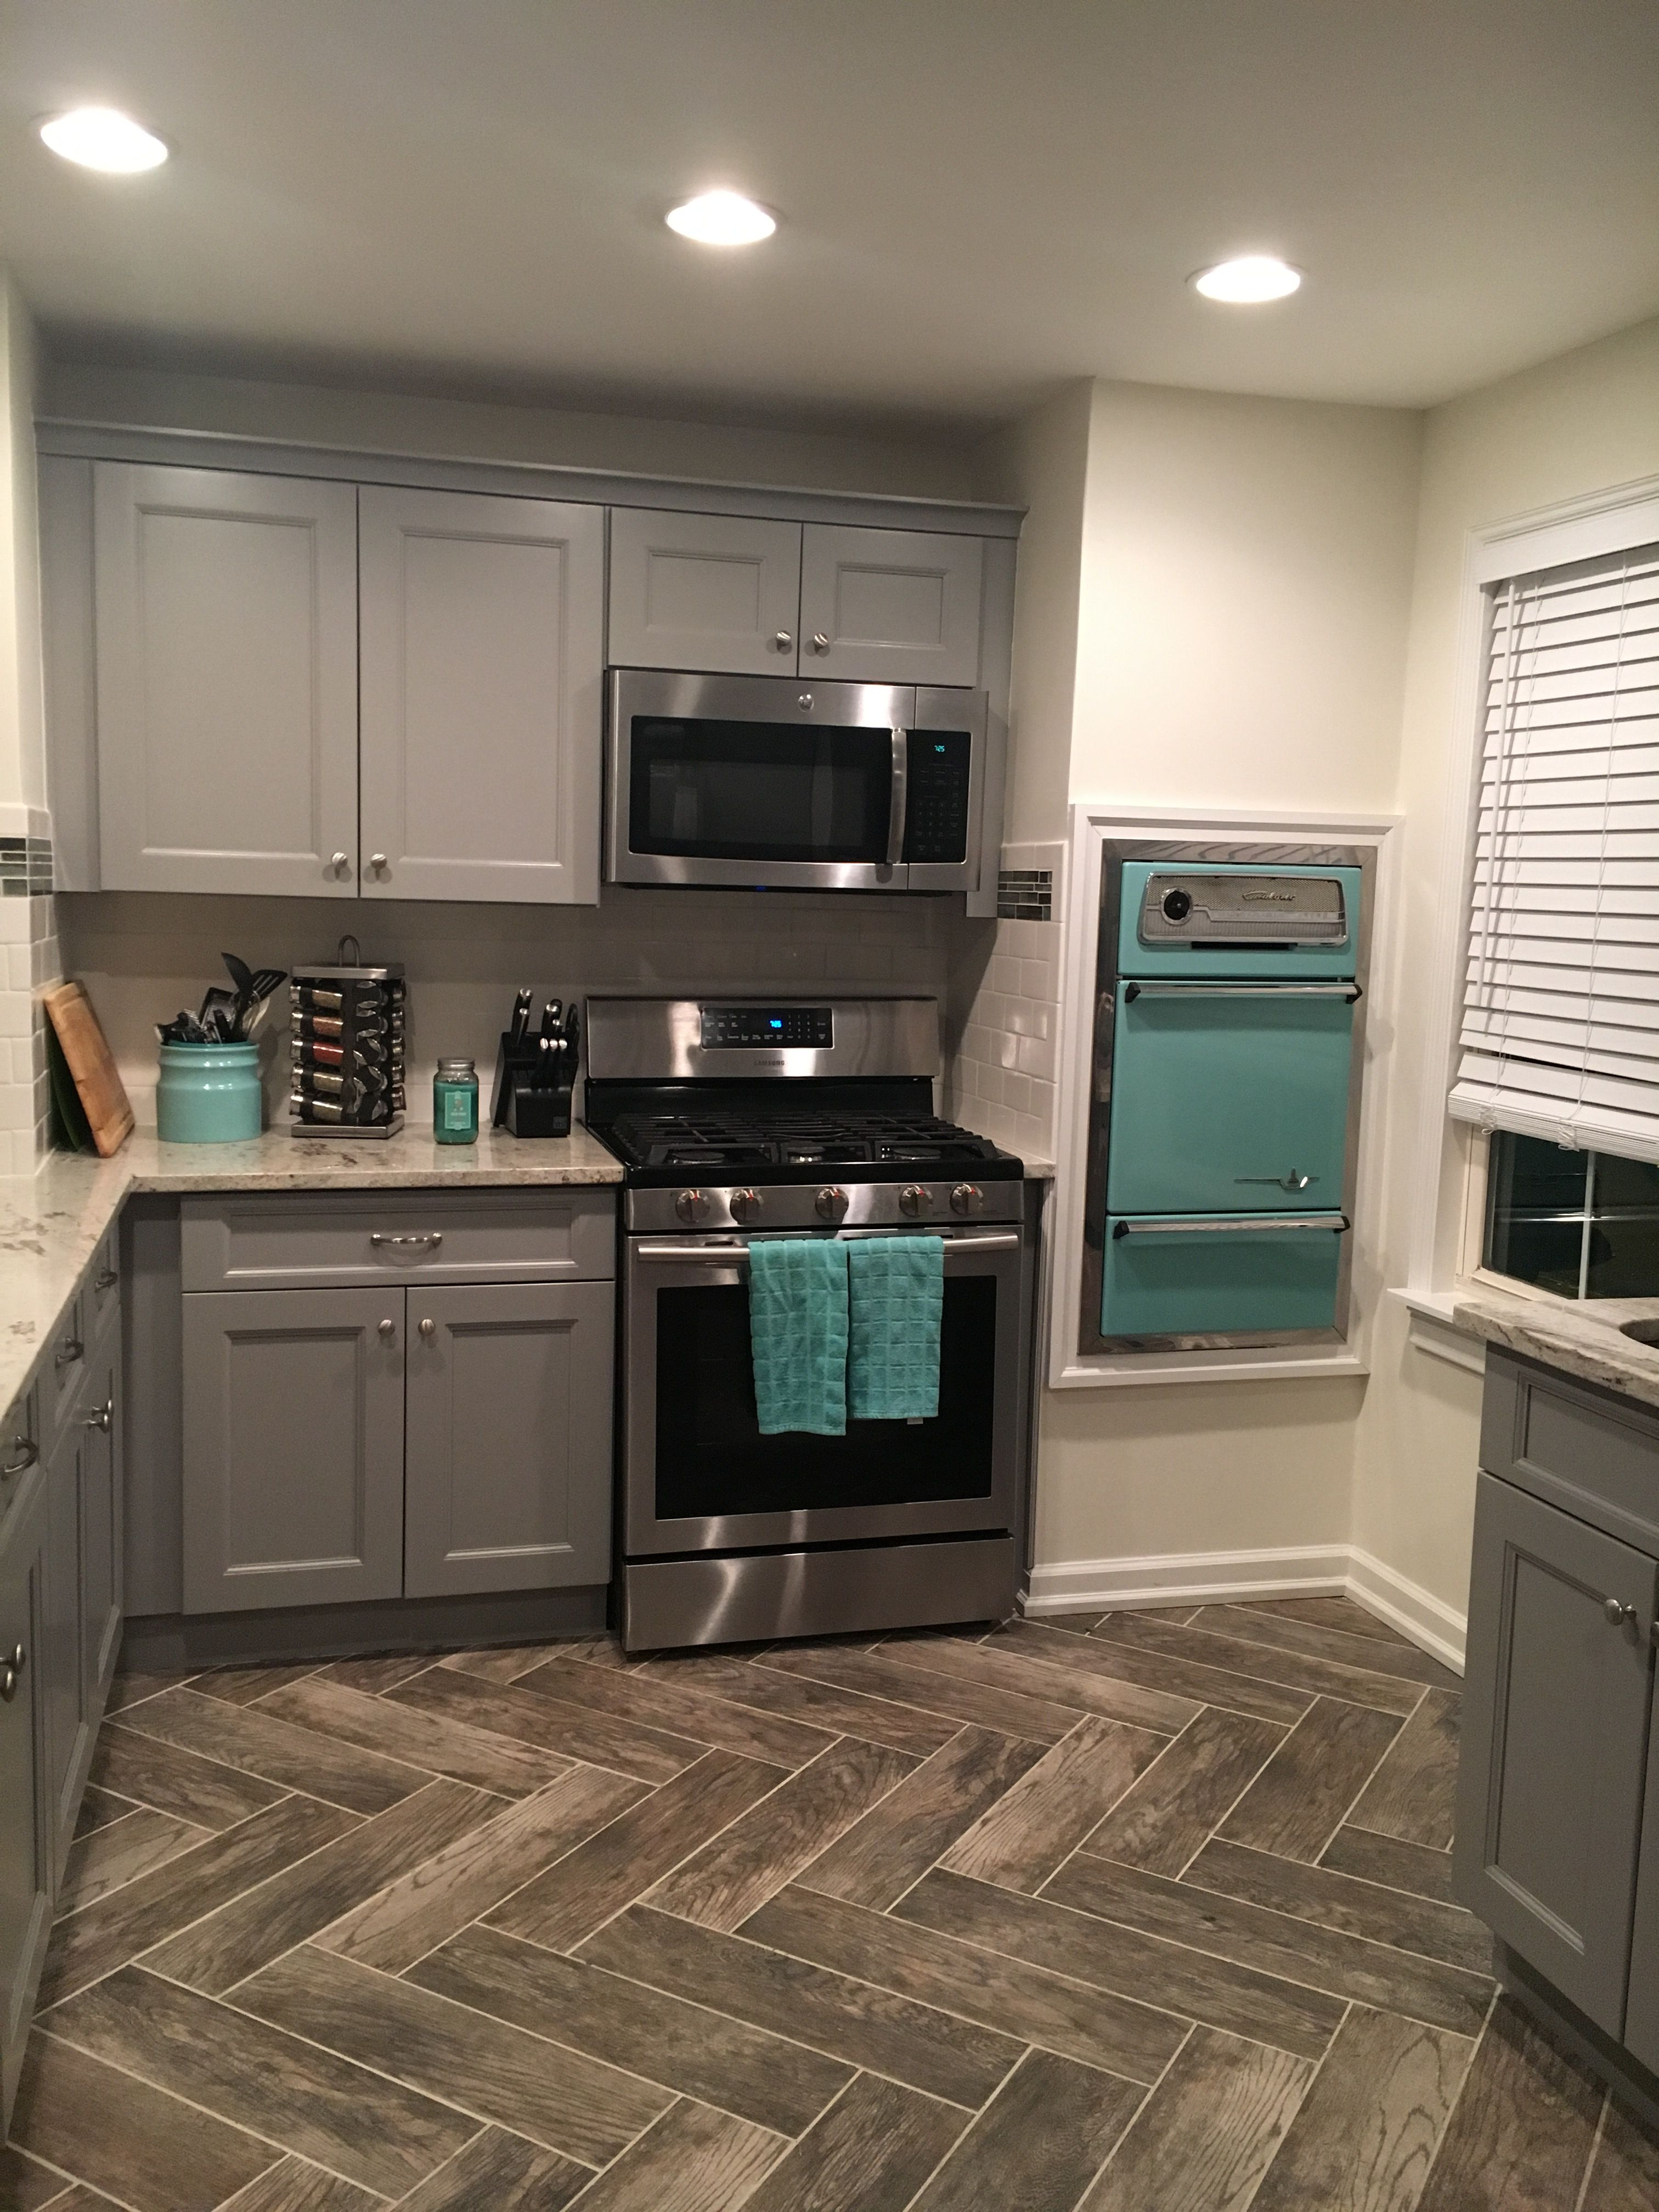 Gray vintage wall oven, teal accents